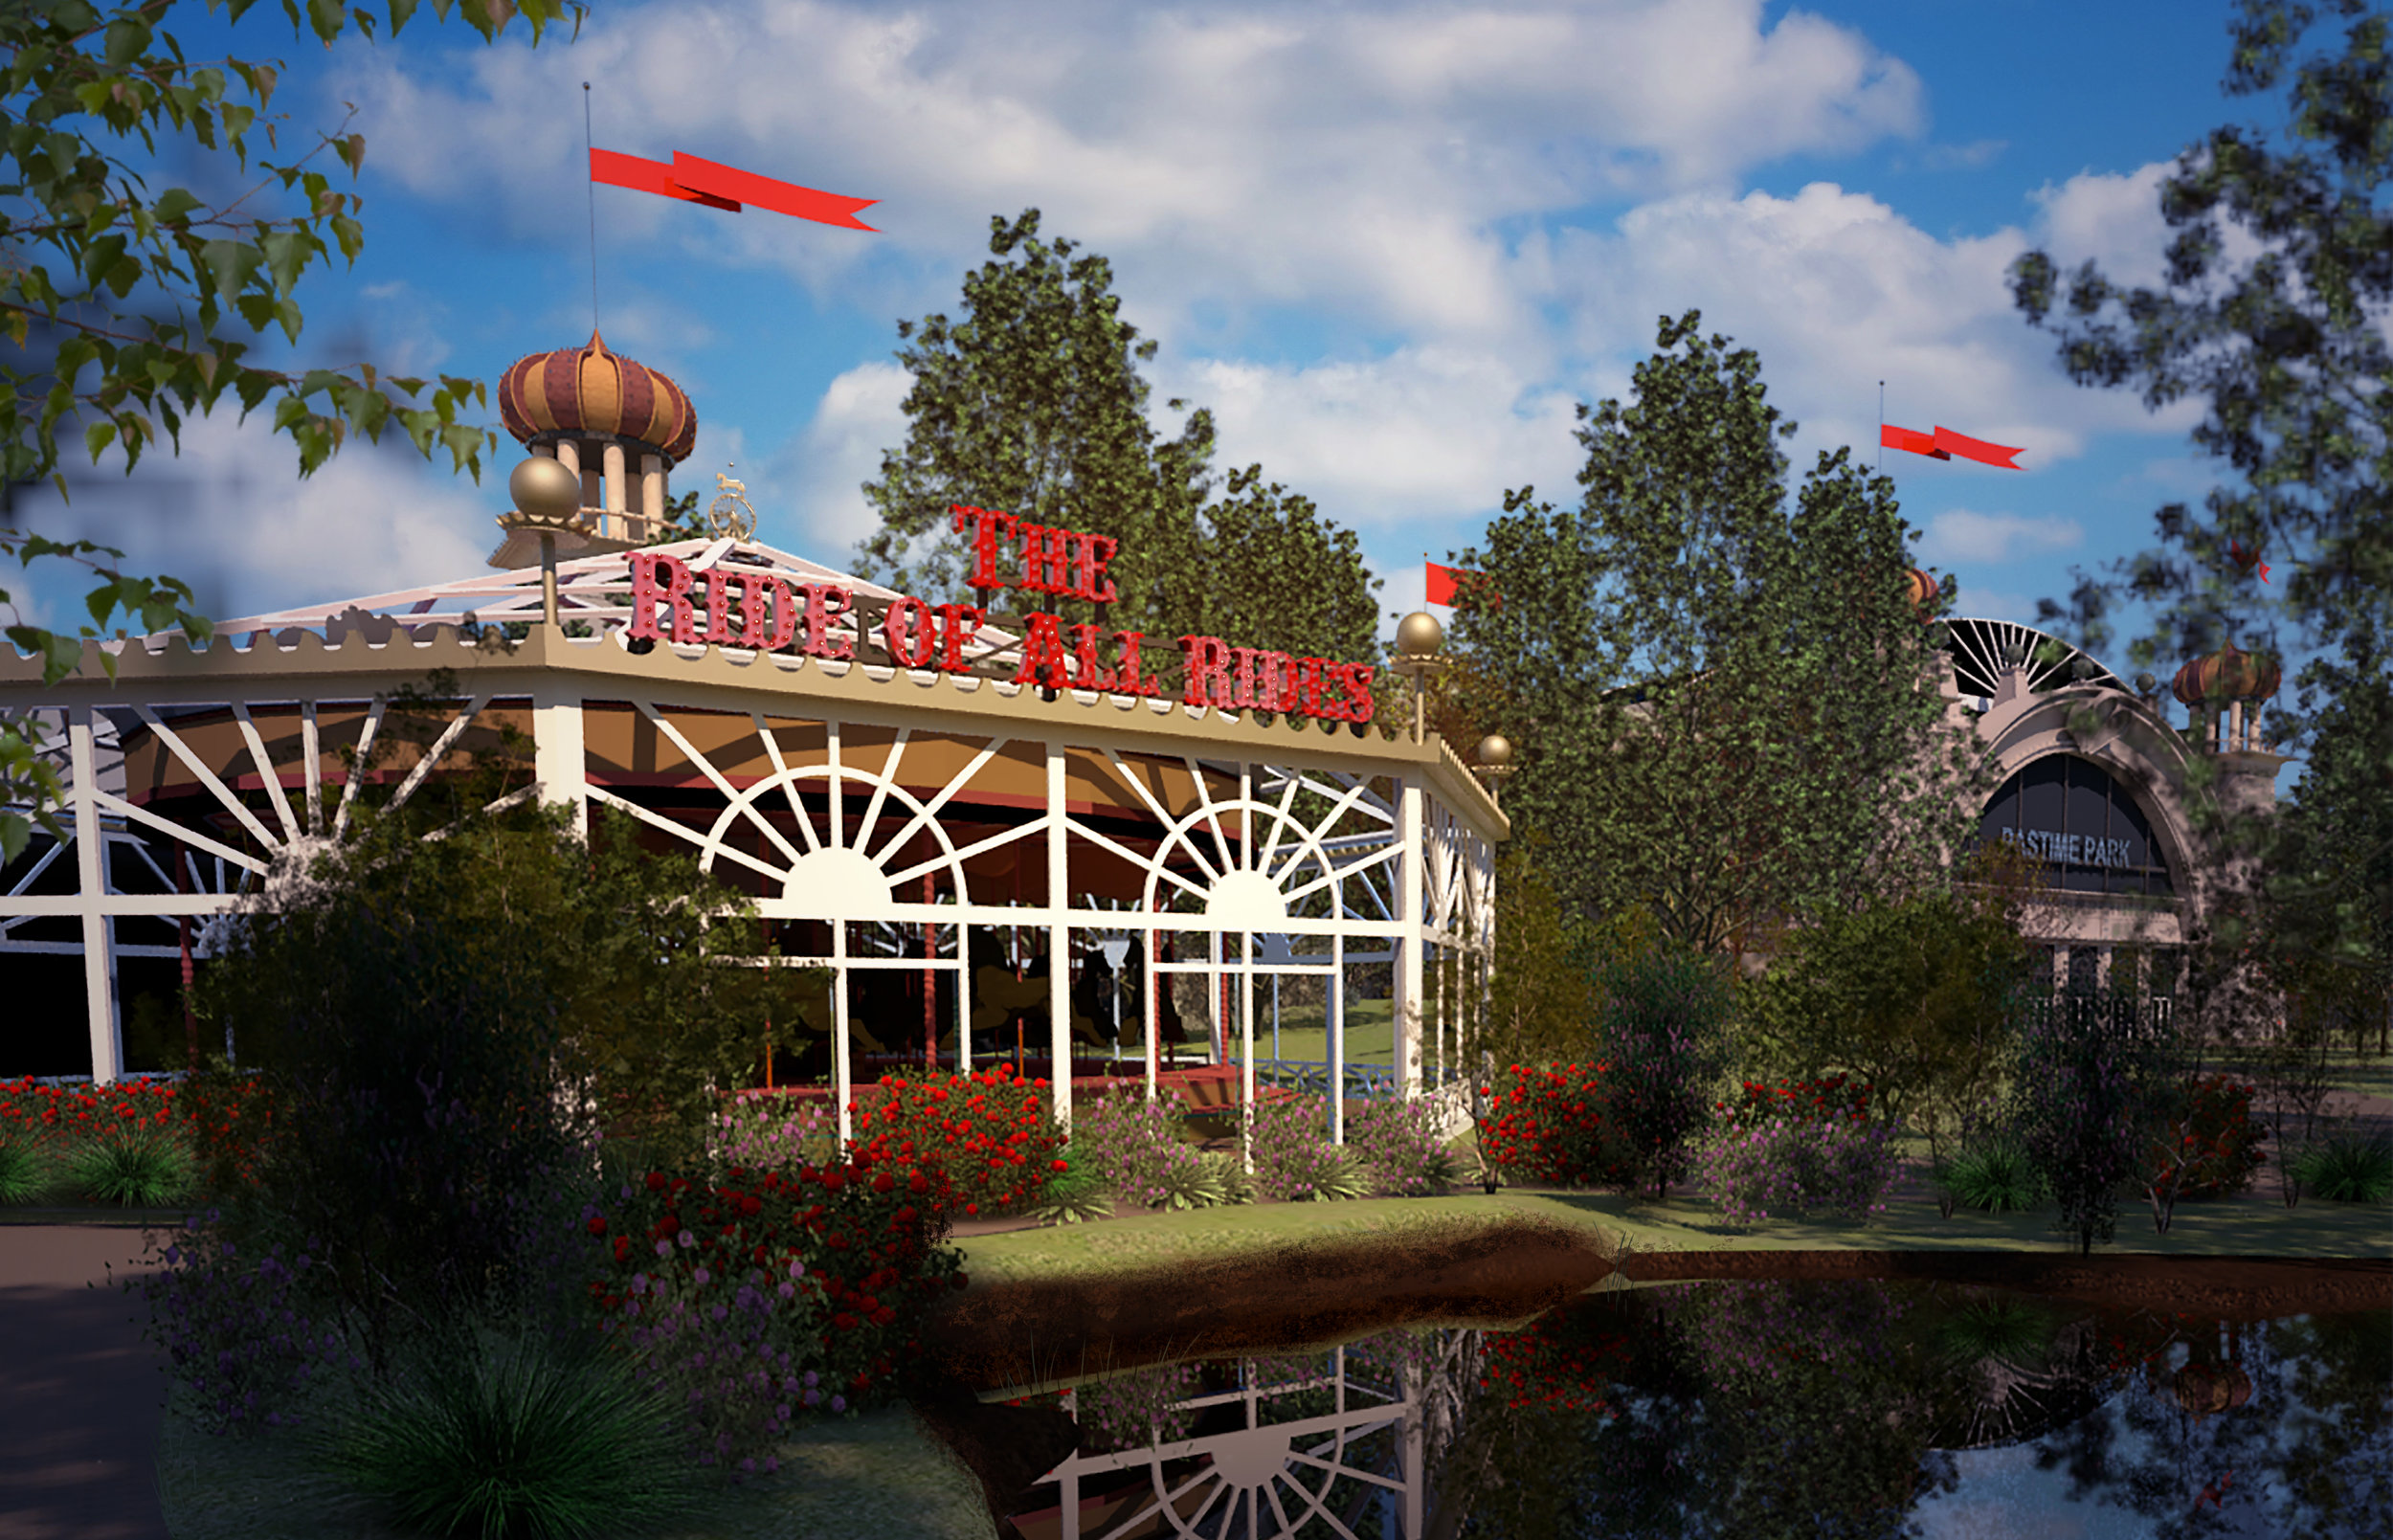 The Ride of All Rides Marquee, 2018.  Revit, VRay, and Photoshop.